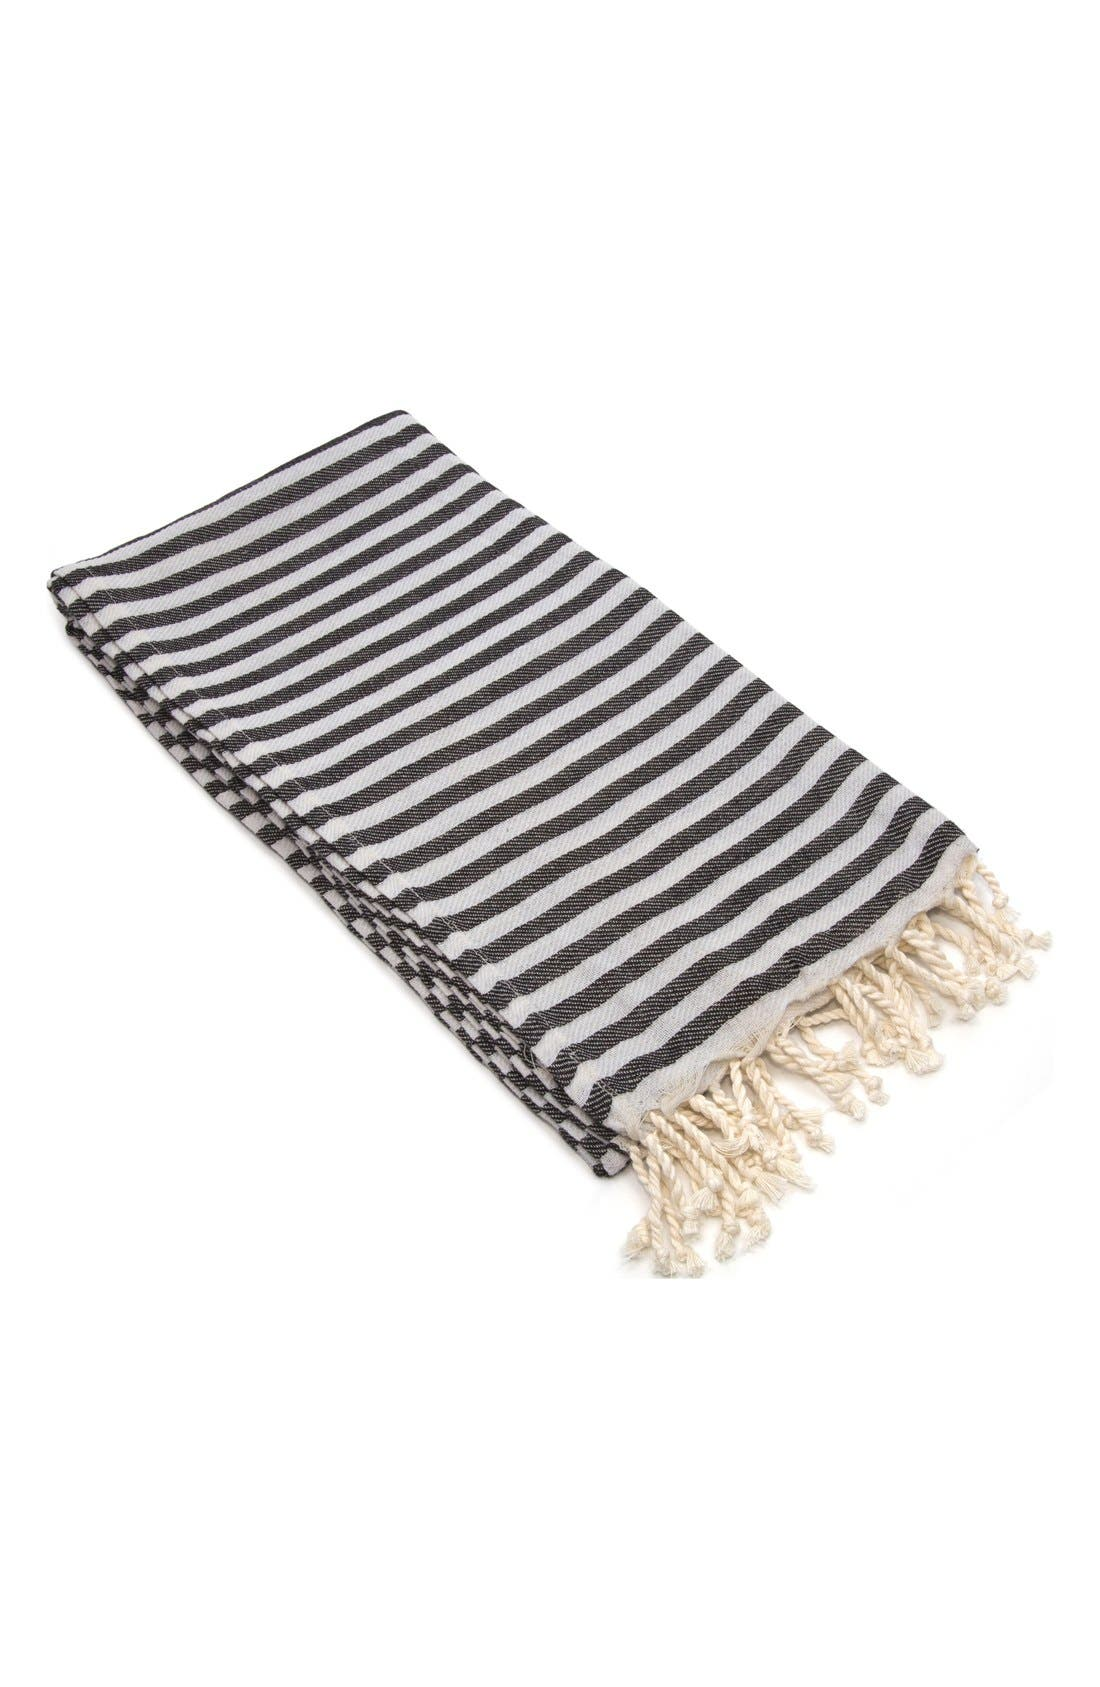 Main Image - Linum Home Textiles 'Fun in the Sun' Turkish Pestemal Towel